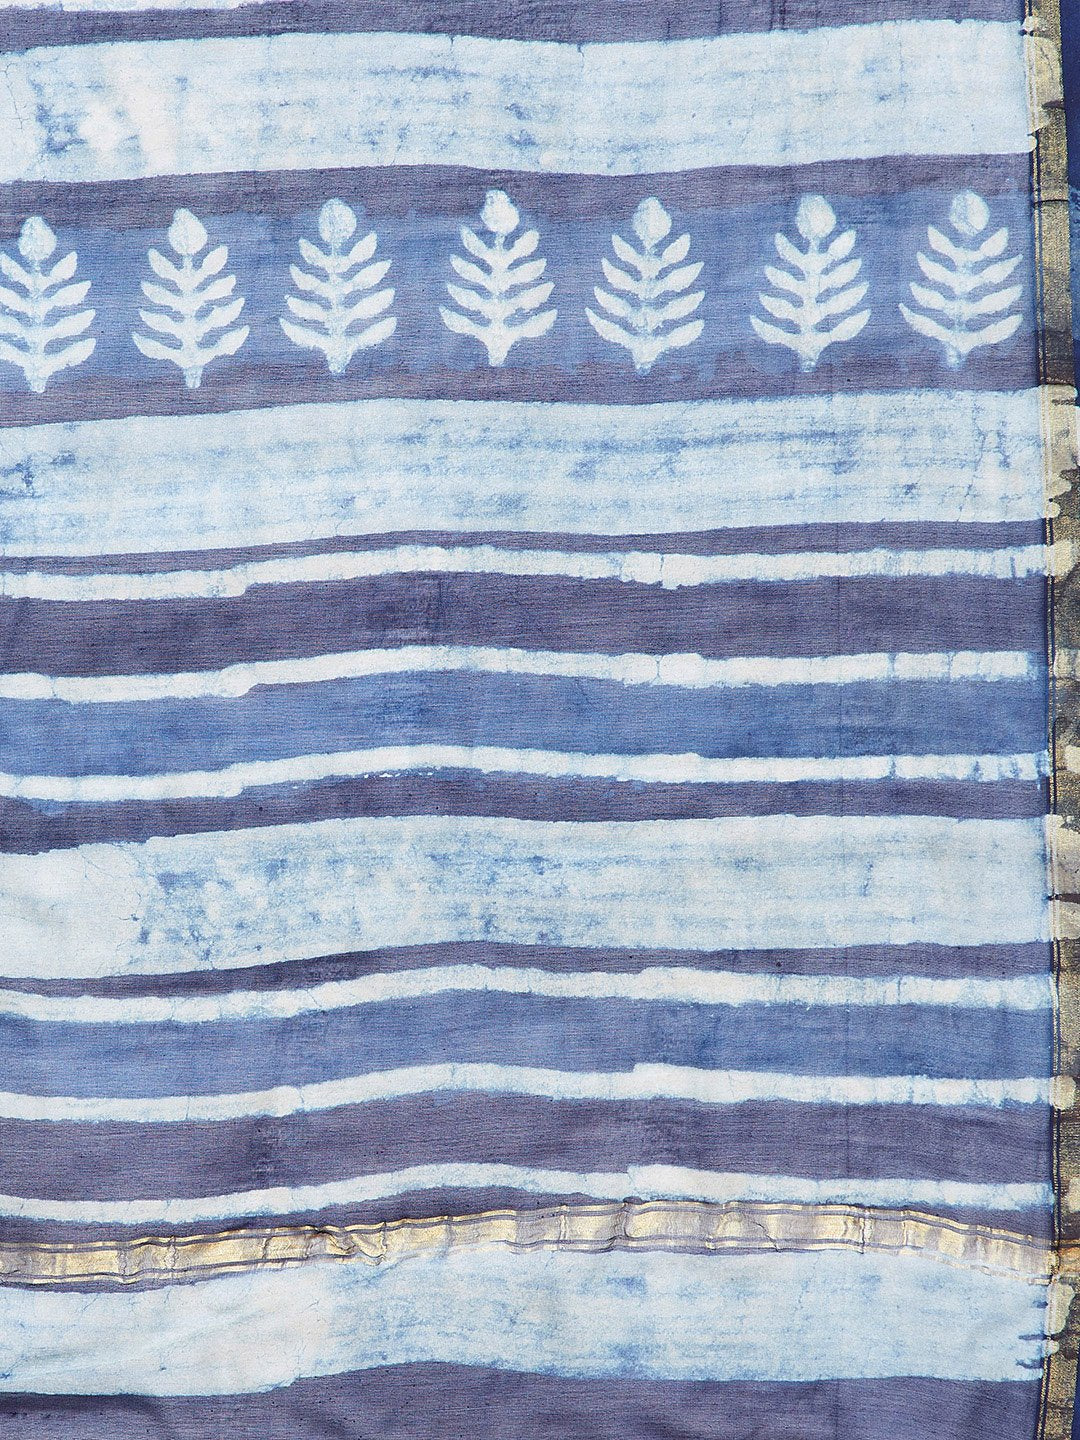 Blue & White Chanderi Silk Hand Block Print Handcrafted Saree-Saree-Kalakari India-BHKPSA0001-Chanderi, Dabu, Geographical Indication, Hand Blocks, Hand Crafted, Heritage Prints, Indigo, Natural Dyes, Sarees, Sustainable Fabrics-[Linen,Ethnic,wear,Fashionista,Handloom,Handicraft,Indigo,blockprint,block,print,Cotton,Chanderi,Blue, latest,classy,party,bollywood,trendy,summer,style,traditional,formal,elegant,unique,style,hand,block,print, dabu,booti,gift,present,glamorous,affordable,collectible,Sar